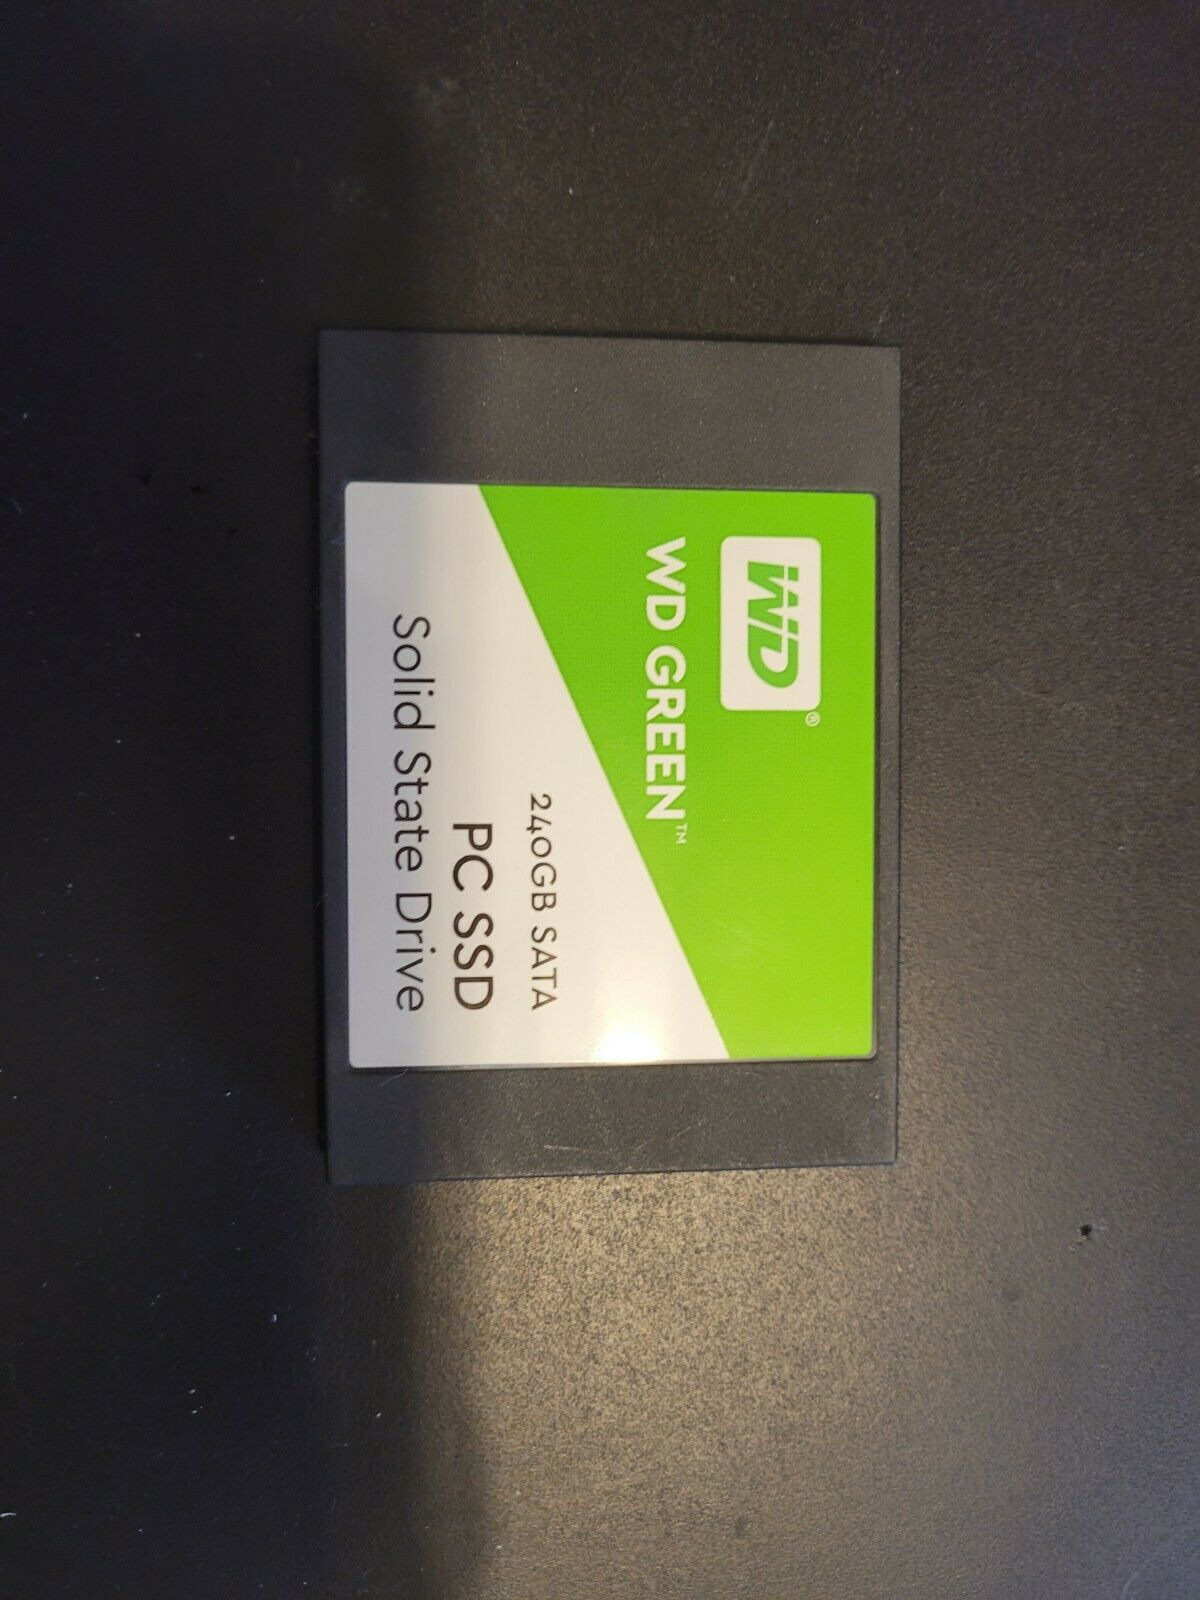 Western Digital WD Green 240GB PC Solid State Drive (WDS240G2G1A). Buy it now for 24.99